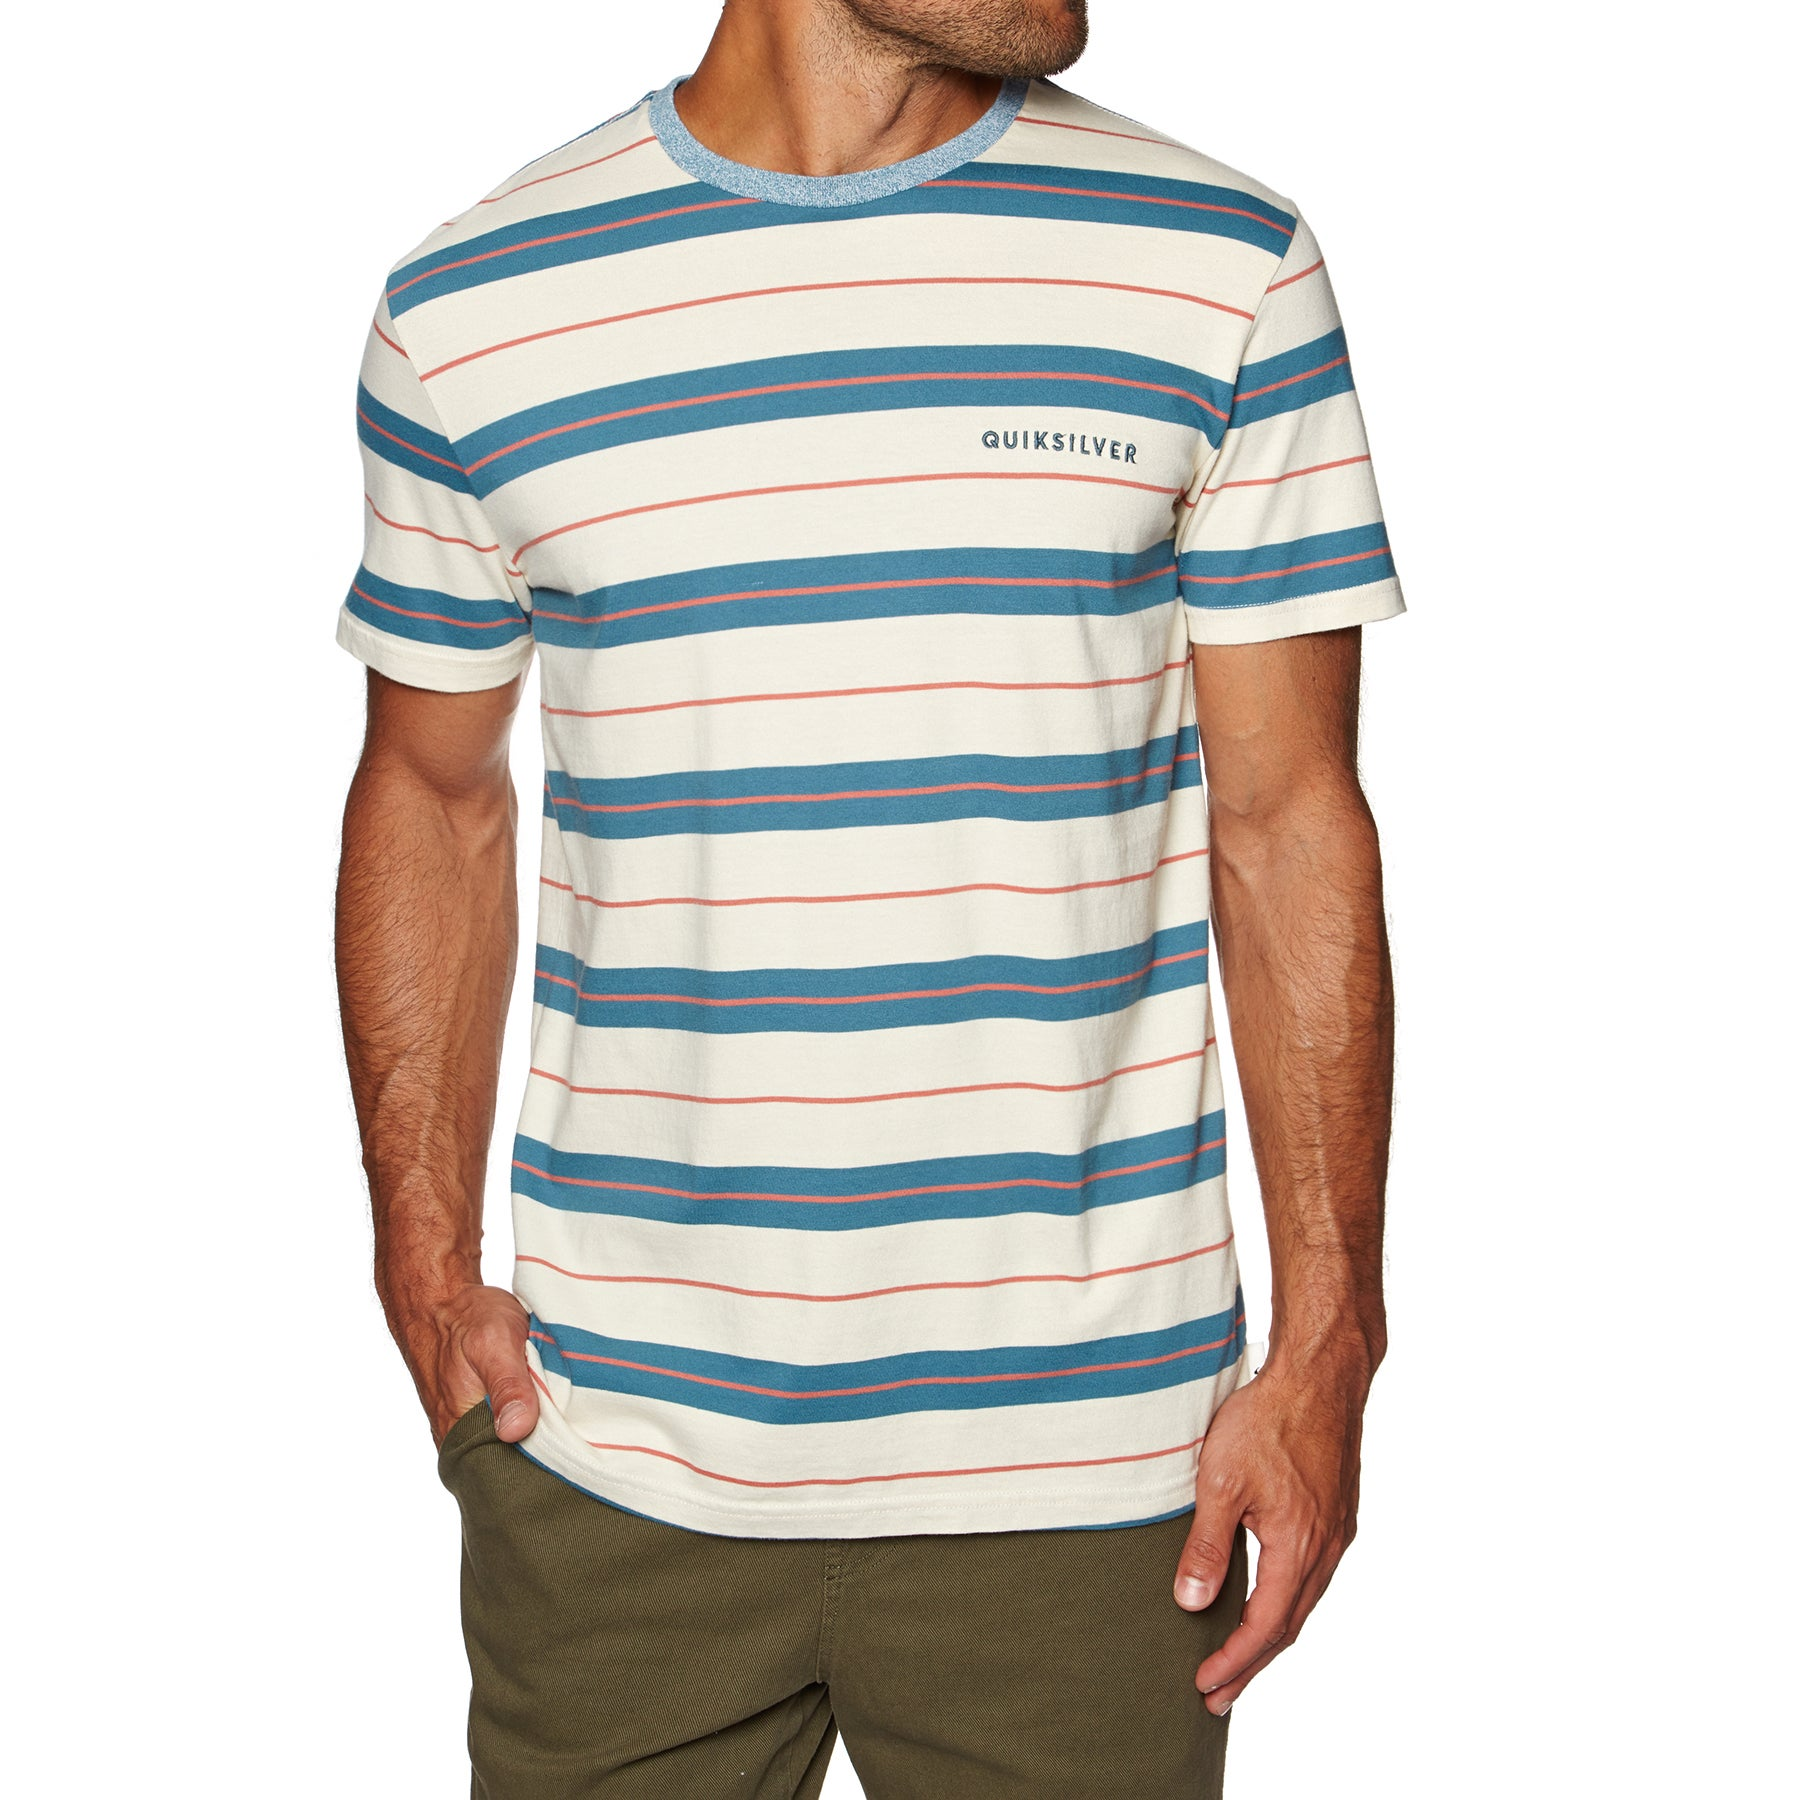 Quiksilver Dera Steps Mens Short Sleeve T-Shirt